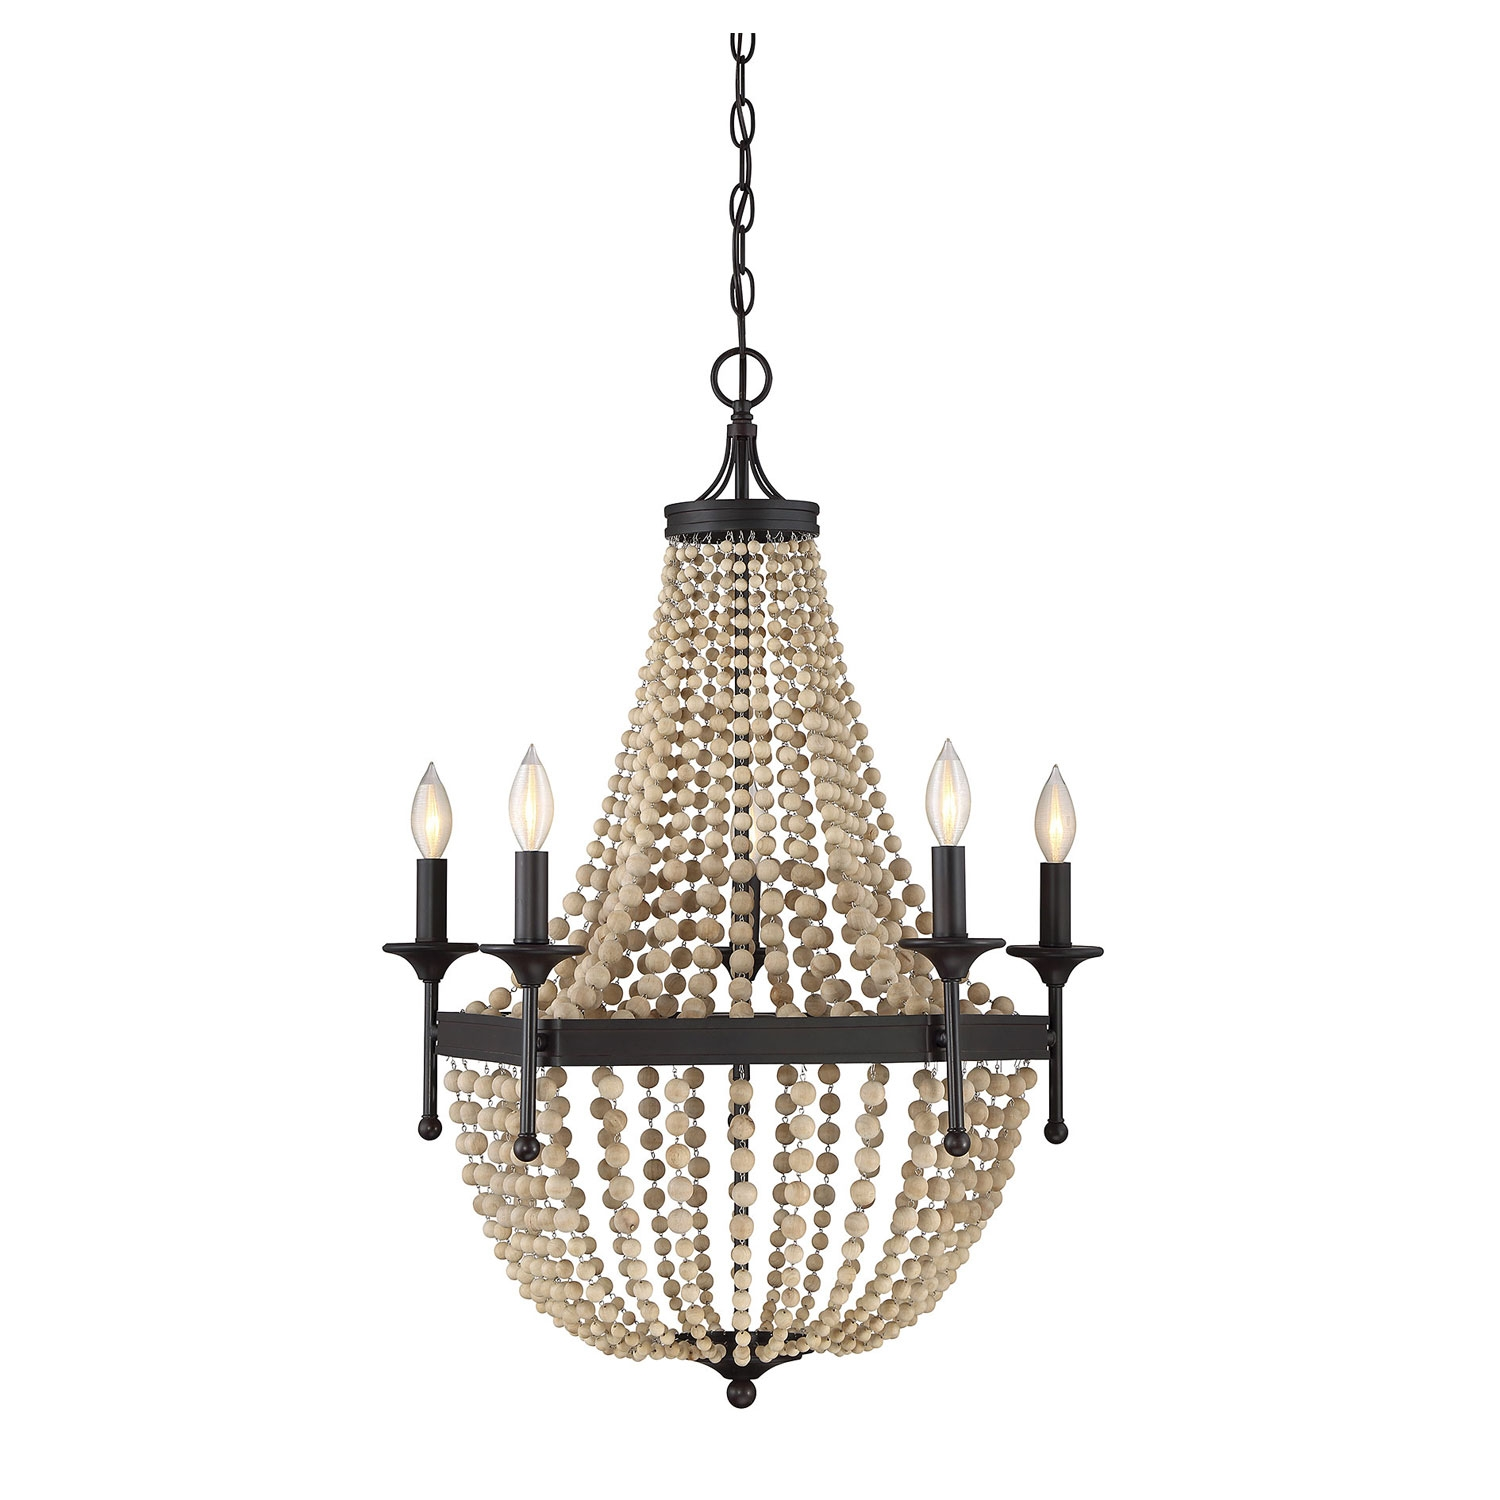 Chandeliers Crystal Modern Iron Shab Chic Country French Pertaining To Ornate Chandeliers (Image 2 of 15)